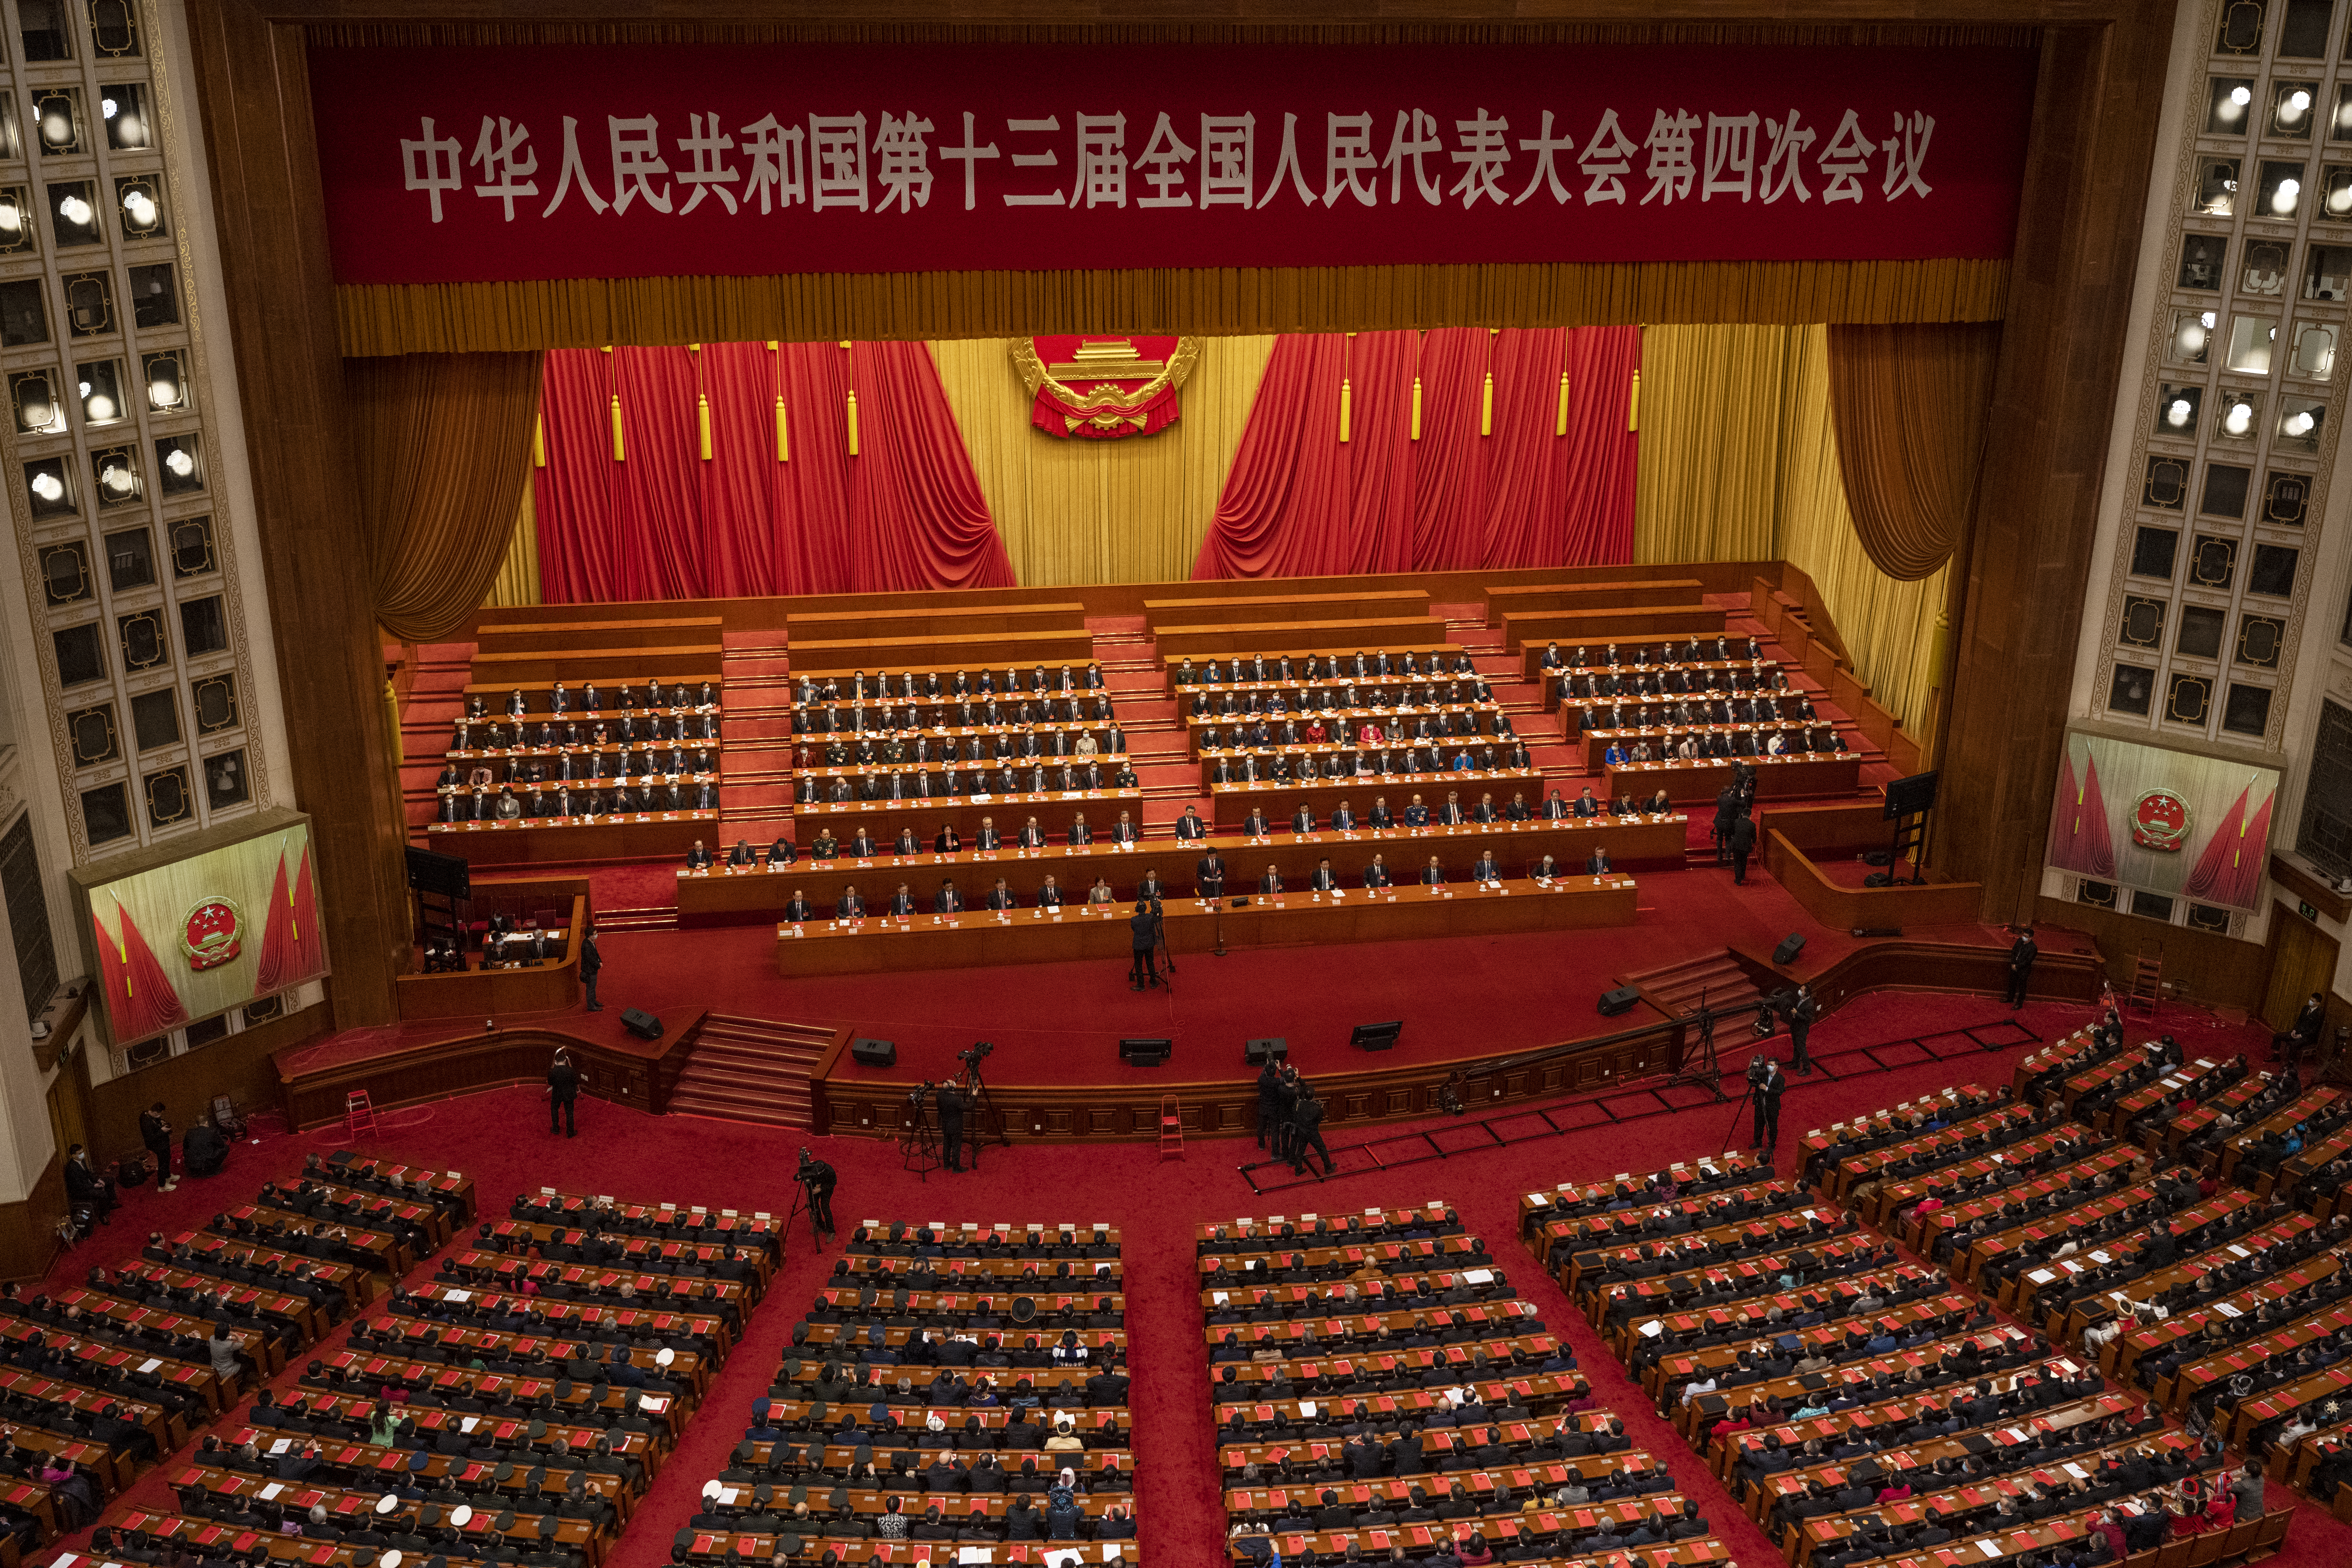 BEIJING, CHINA - MARCH 11: China's senior leadership and lawmakers gather during the closing session of the National People's Congress at the Great Hall of the People on March 11, 2021 in Beijing, China. The annual political gatherings of the National People's Congress and the Chinese People's Political Consultative Conference, known as the Two Sessions, brings together China's leadership and lawmakers to set the blueprint for the coming year. It is considered the most important event on the governments calendar and offers a rare glimpse at what President Xi Jinping and top officials see as priorities. With the pandemic largely under control in China, discussions this year are expected to signal Beijing's intentions around technology competition, control over Hong Kong, and strategic threats posed by Western countries including the United States. The political meetings, held at the Great Hall of the People at the edge of Tiananmen Square in central Beijing, can typically last for up to two weeks. (Photo by Kevin Frayer/Getty Images)